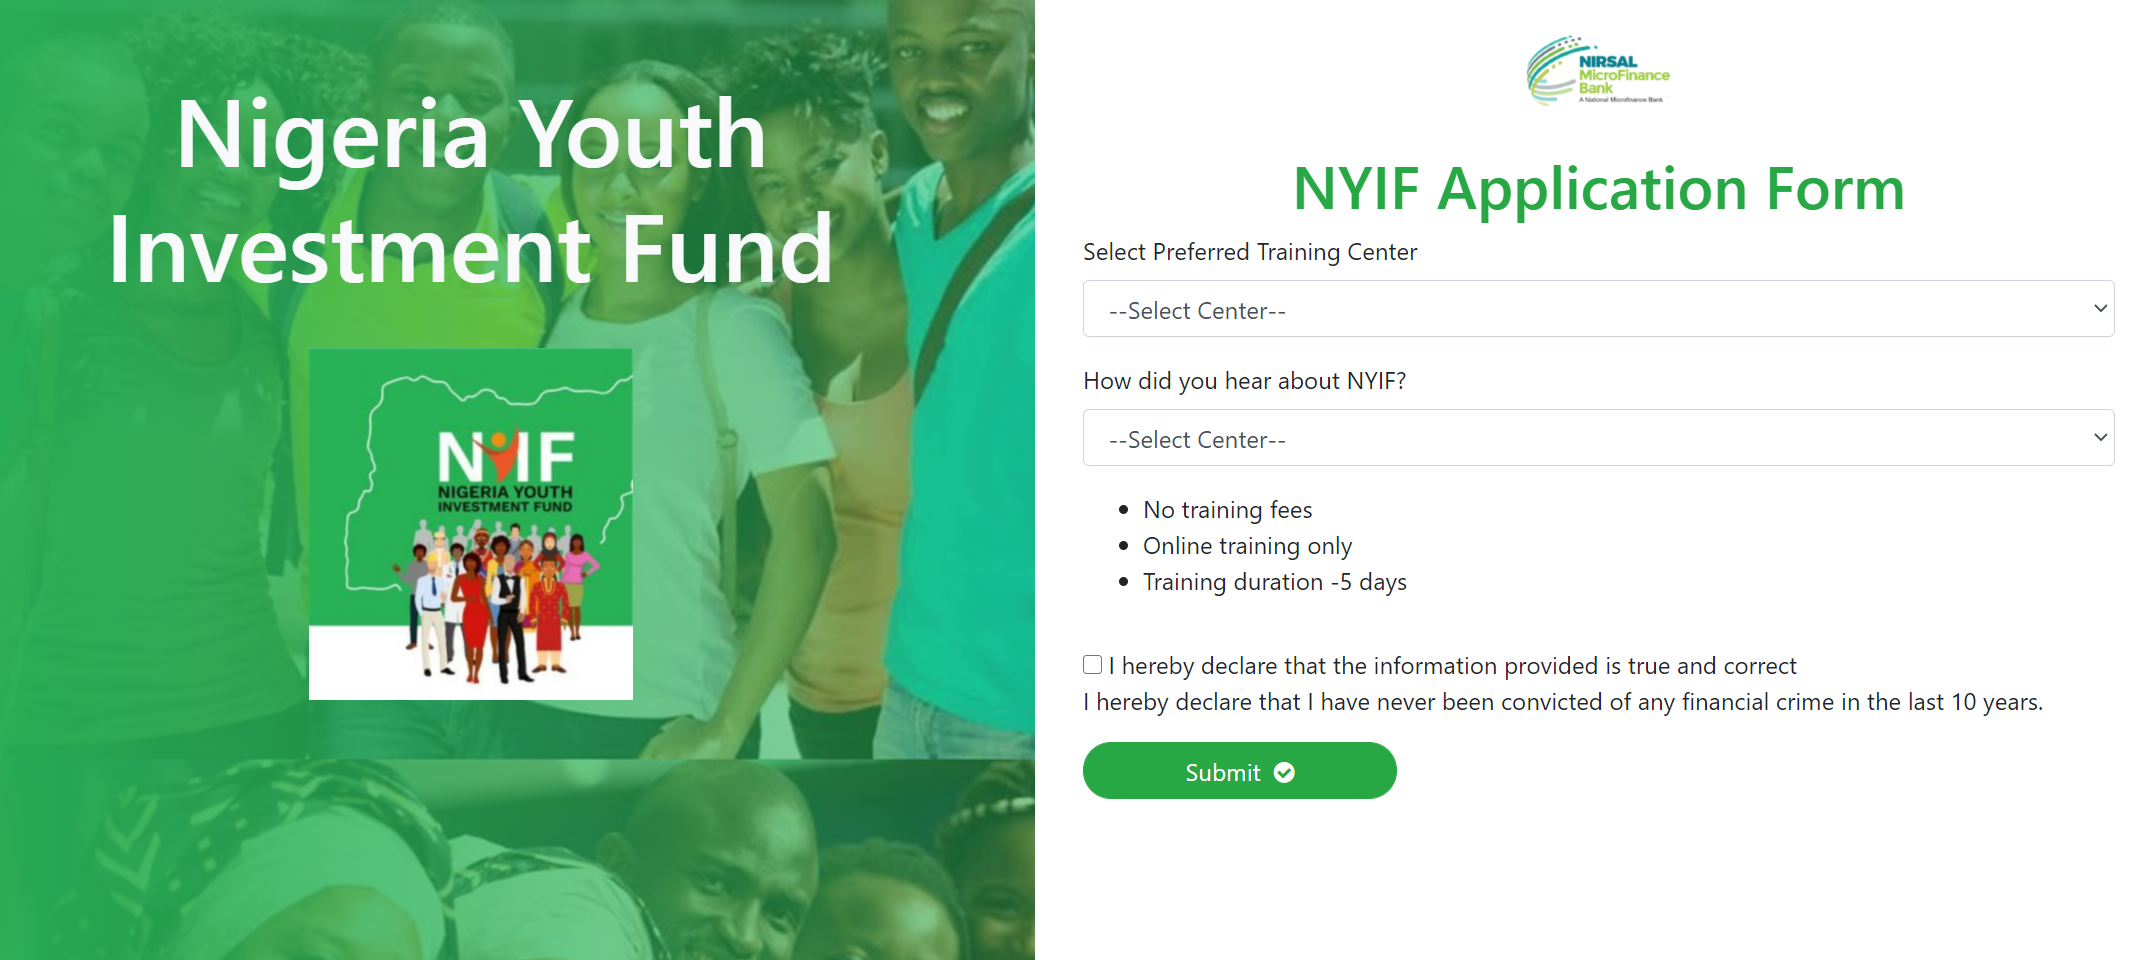 nigeria youth investment fund application form submit last page